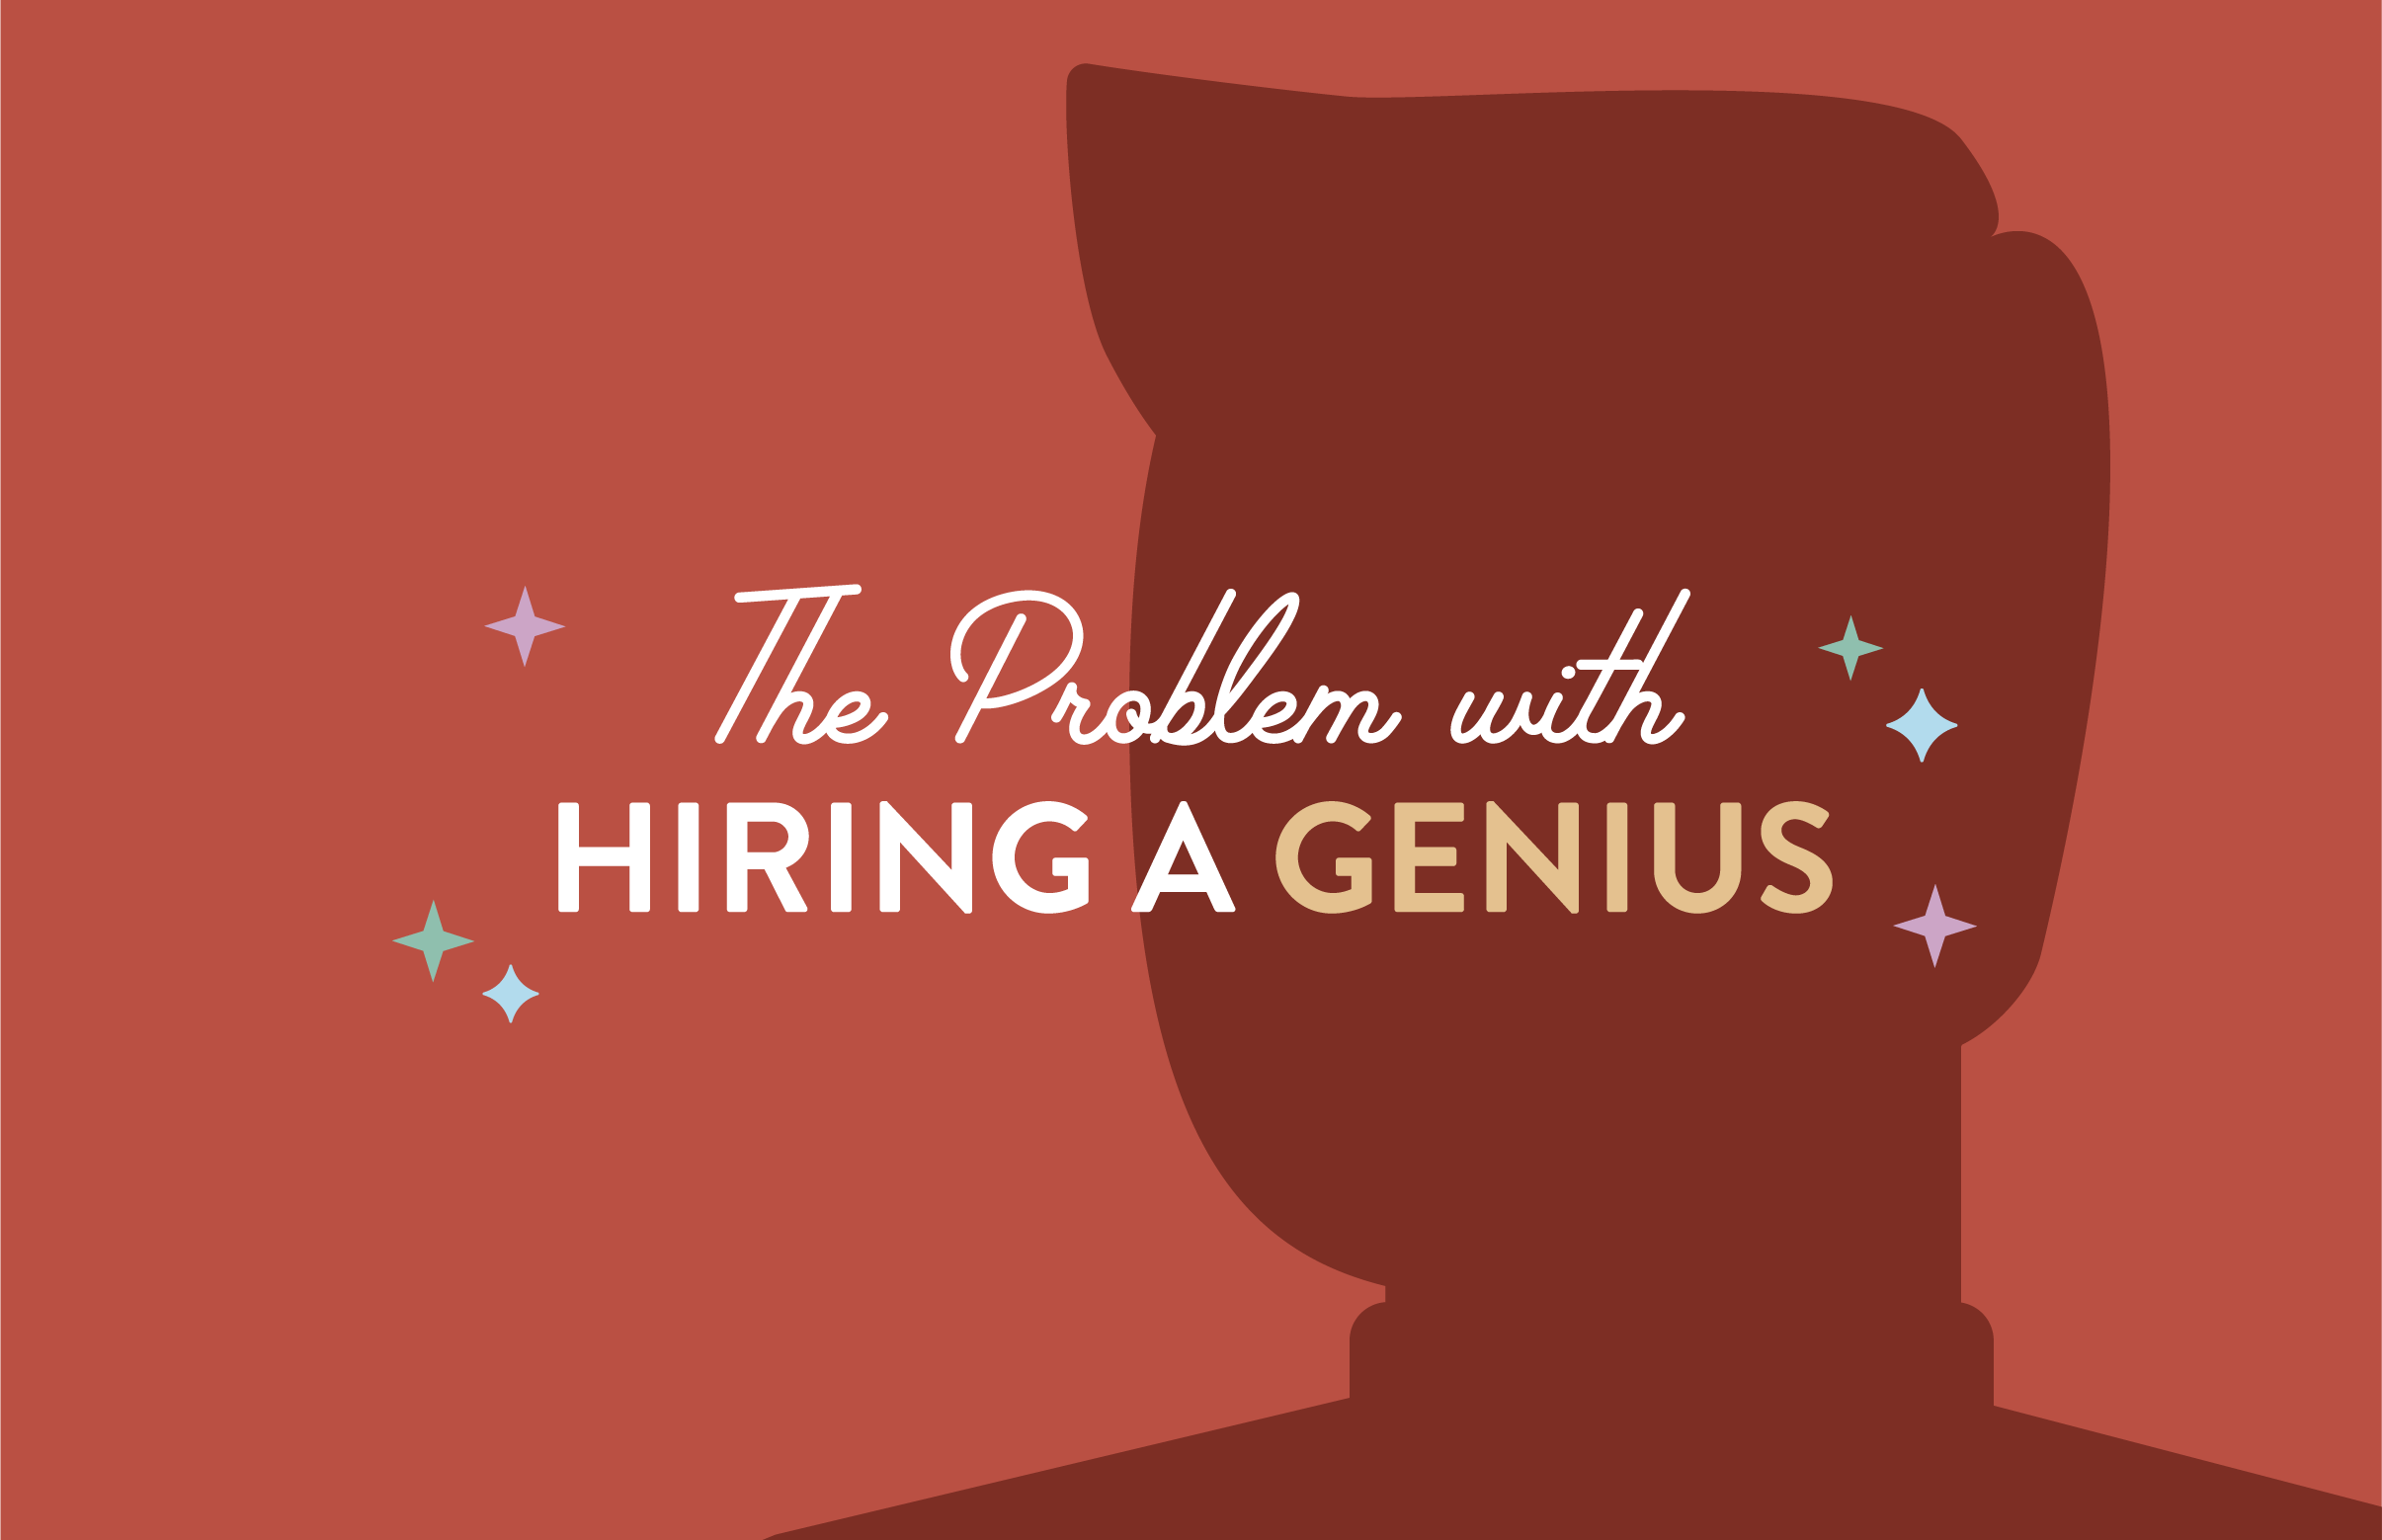 The Problem with Hiring a Genius, According to Amy Poehler